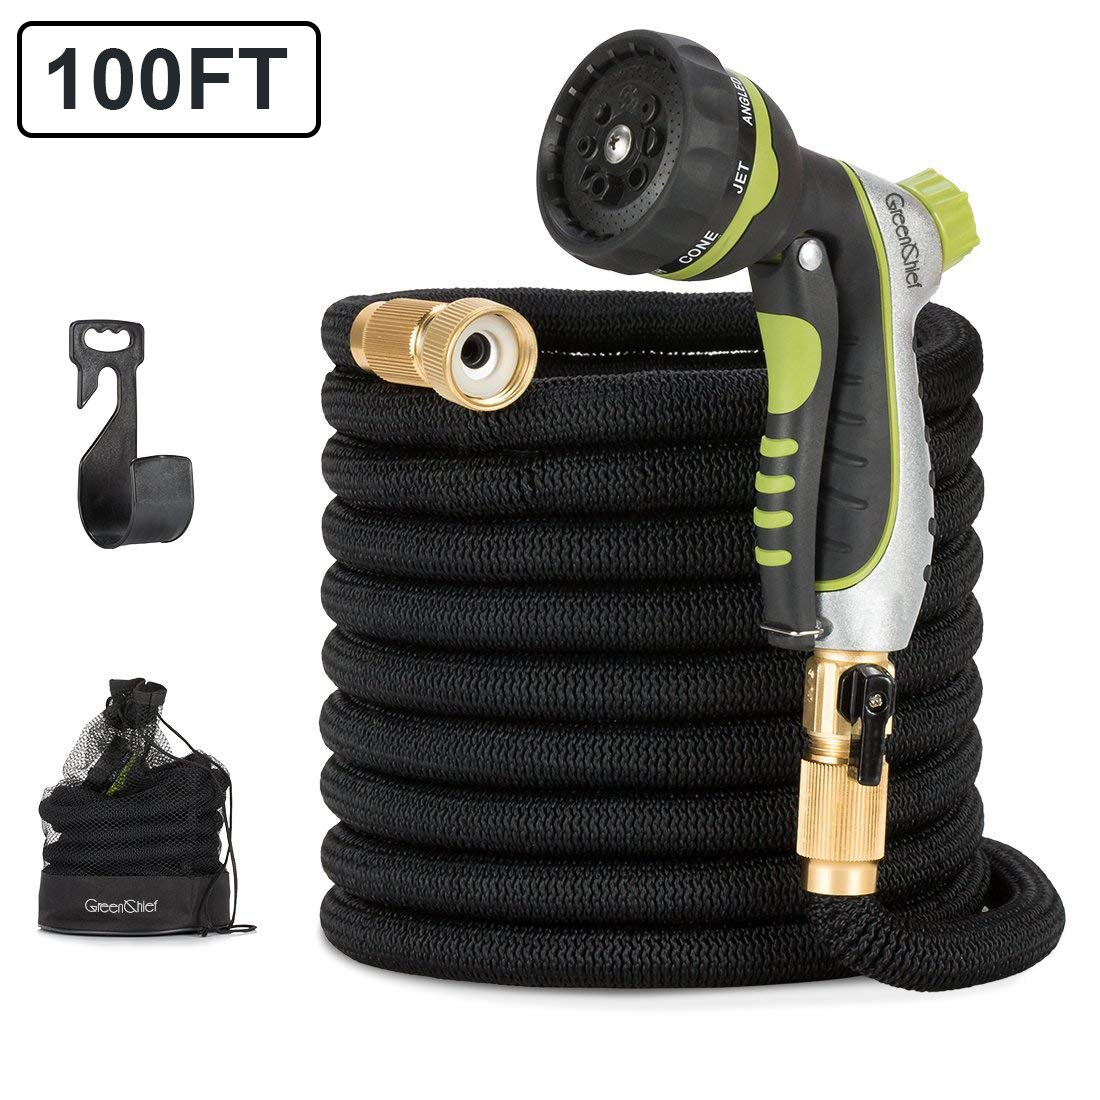 GreenChief Garden Hose 100 FT heavy duty, Expandable All New Flexible Water Hose with Durable Latex Core and Leak-proof Solid Brass Fittings,8